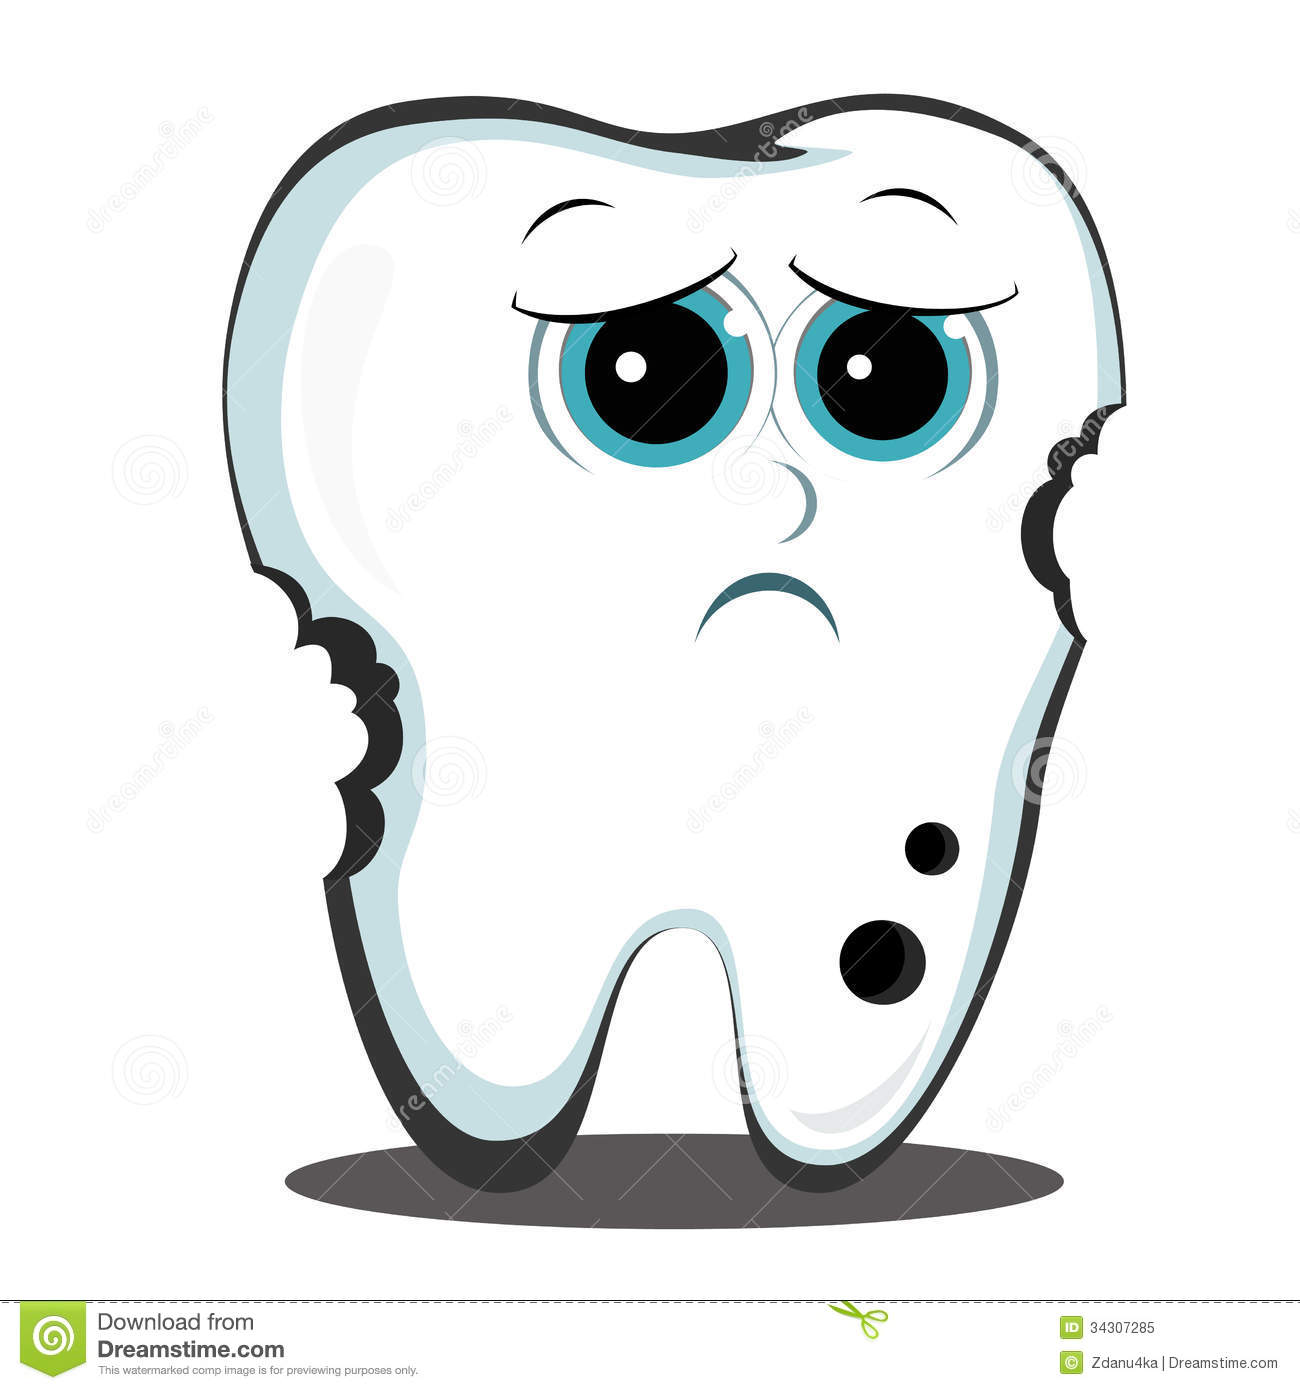 Drawn teeth unhealthy tooth Cavities Mouth Clip Decayed Kid